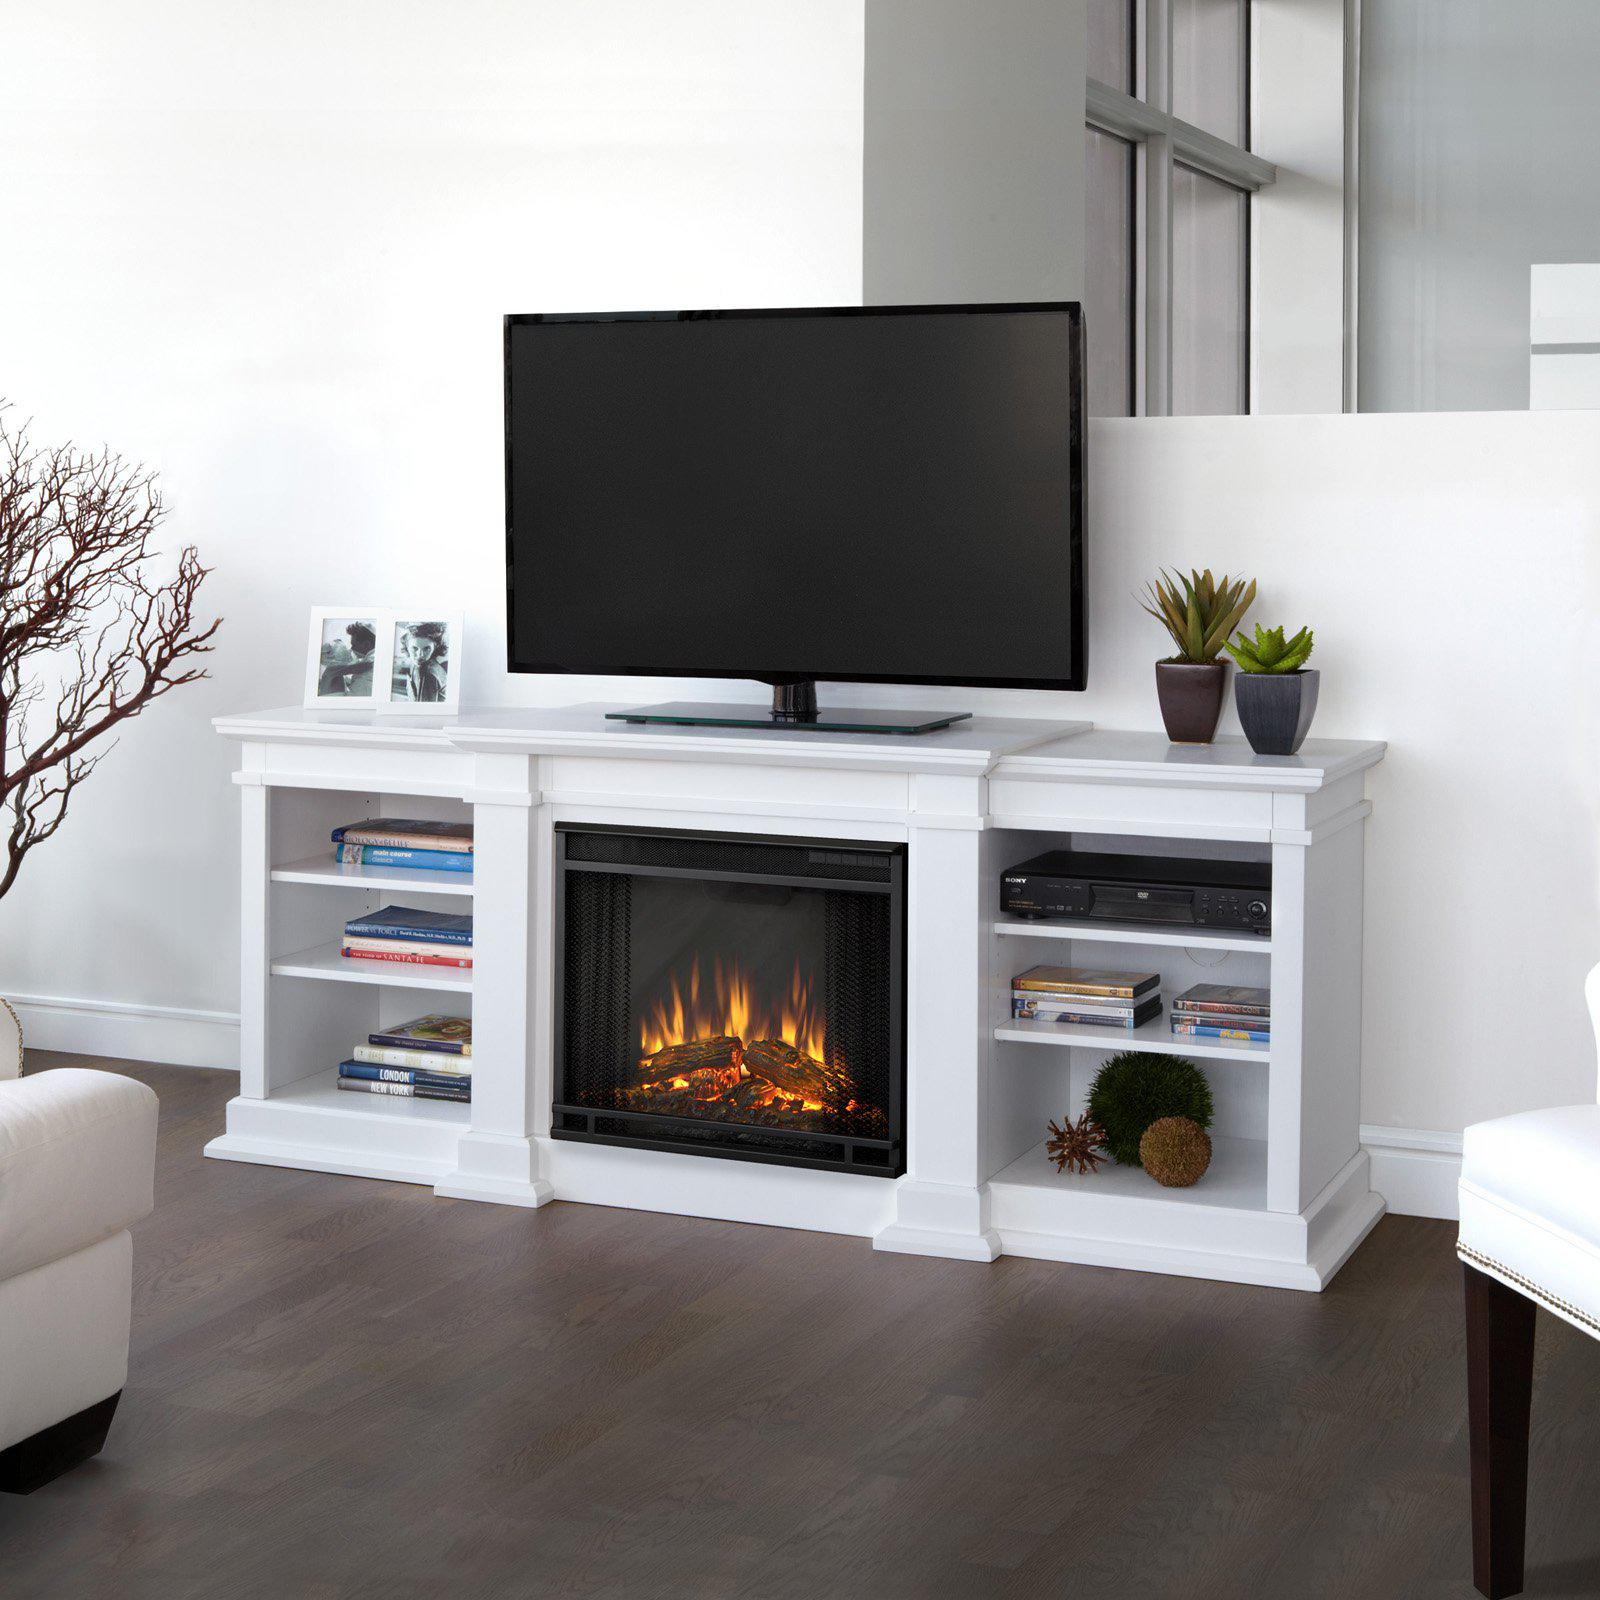 Image of: White Tv Stand With Electric Fireplace